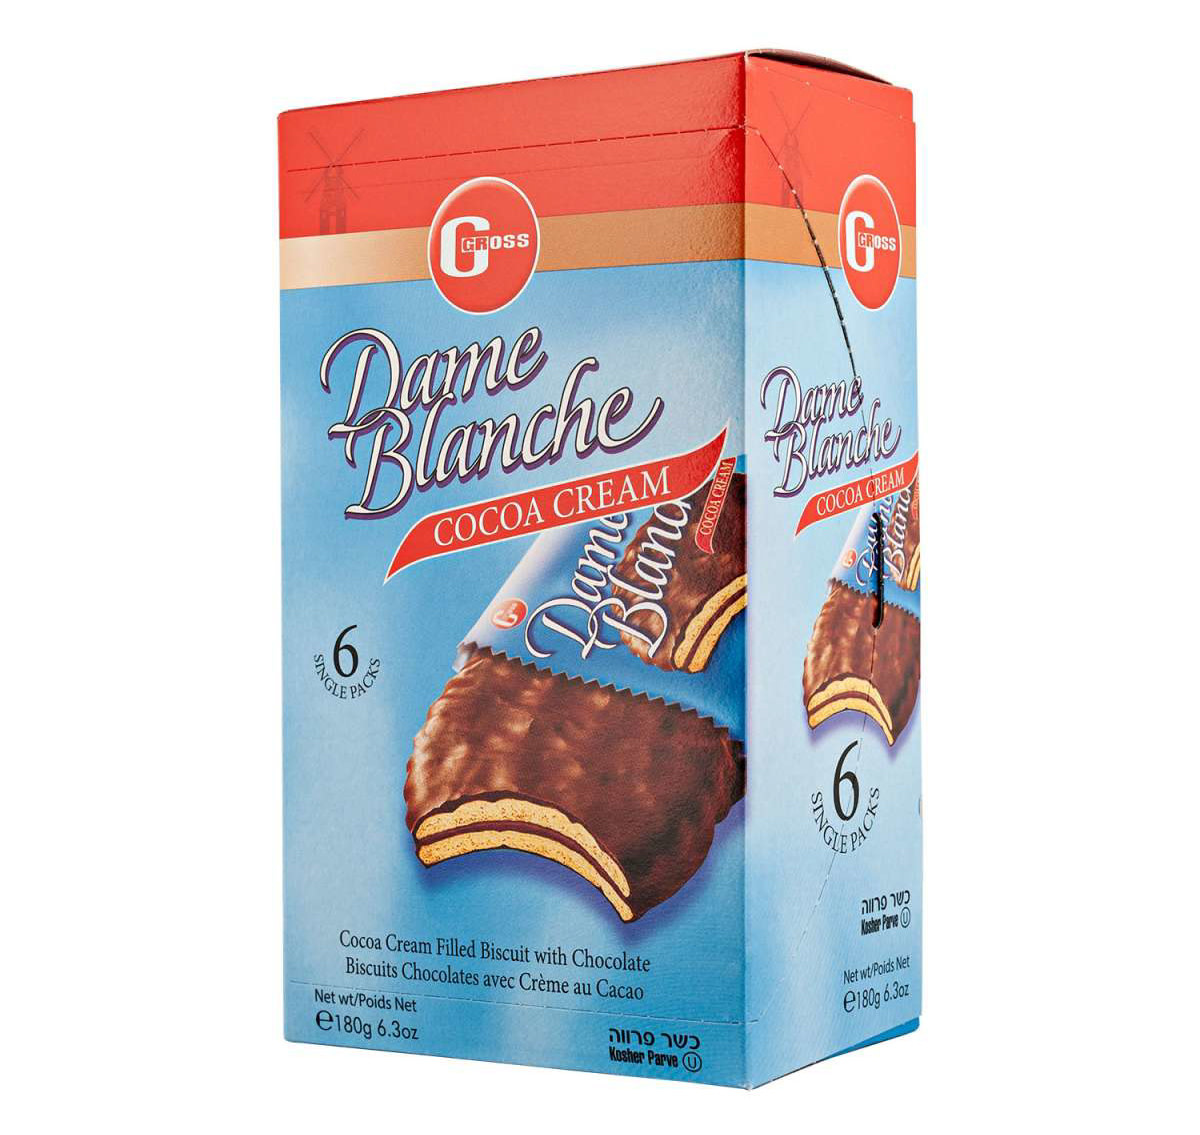 DAME BLANCHE Choco Cream Biscuits